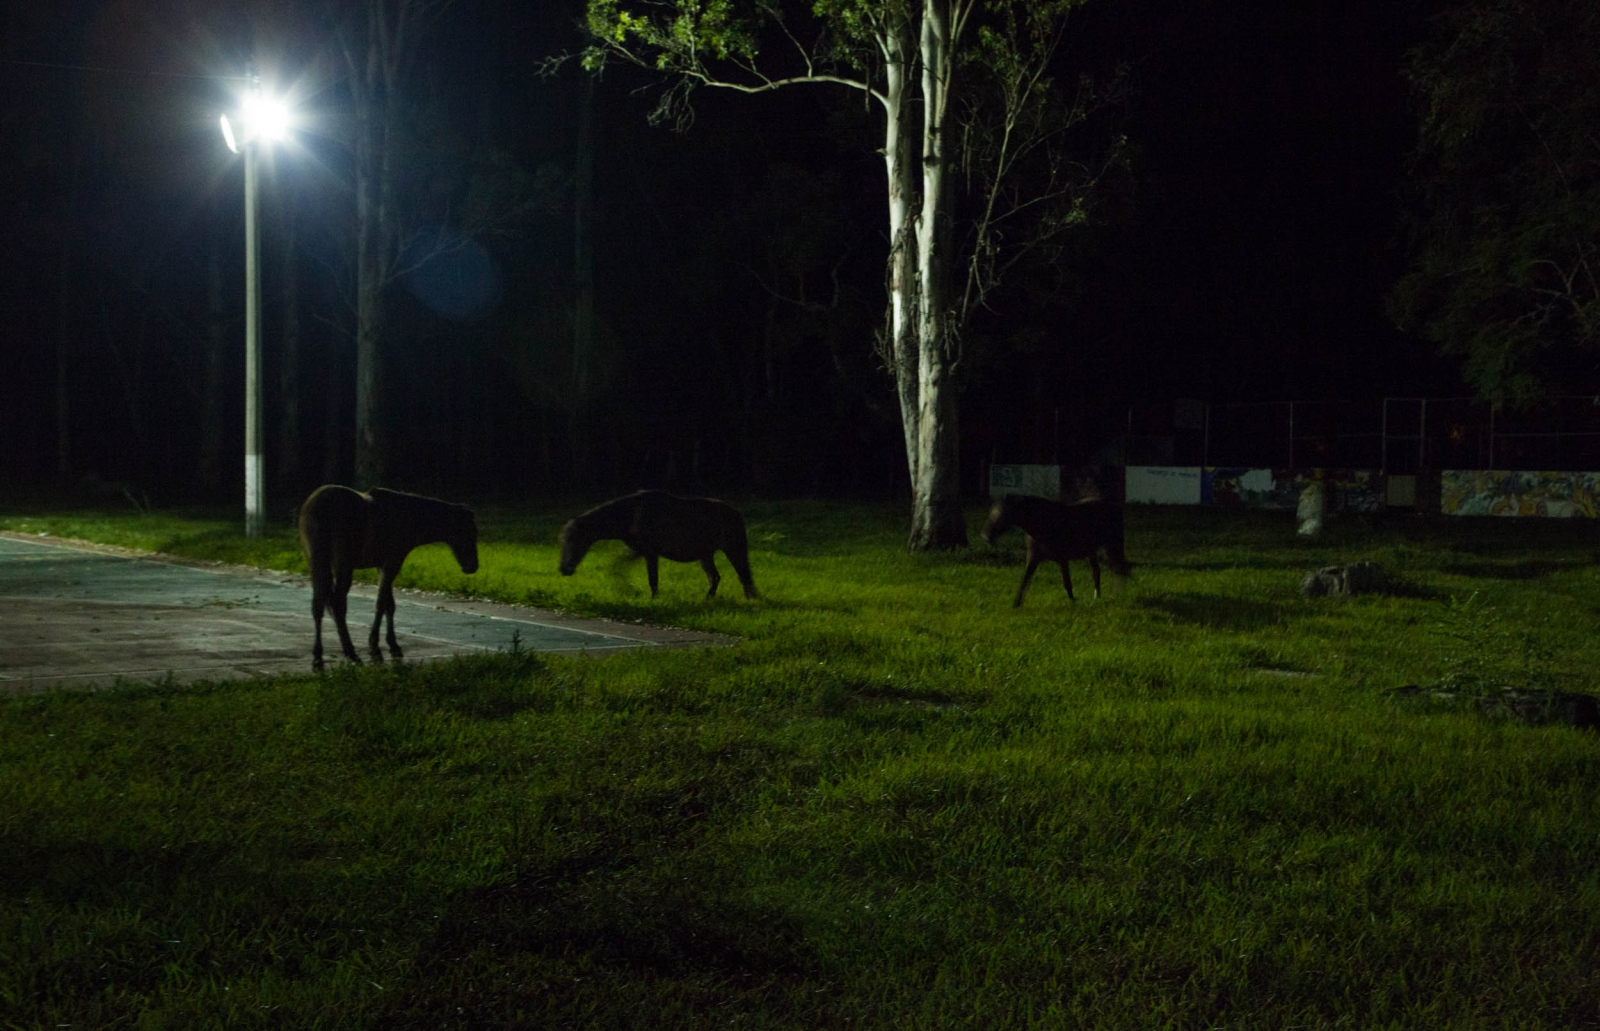 Wild horses roam around the school property freely. // Caballos salvajes pasean libremente por la escuela.